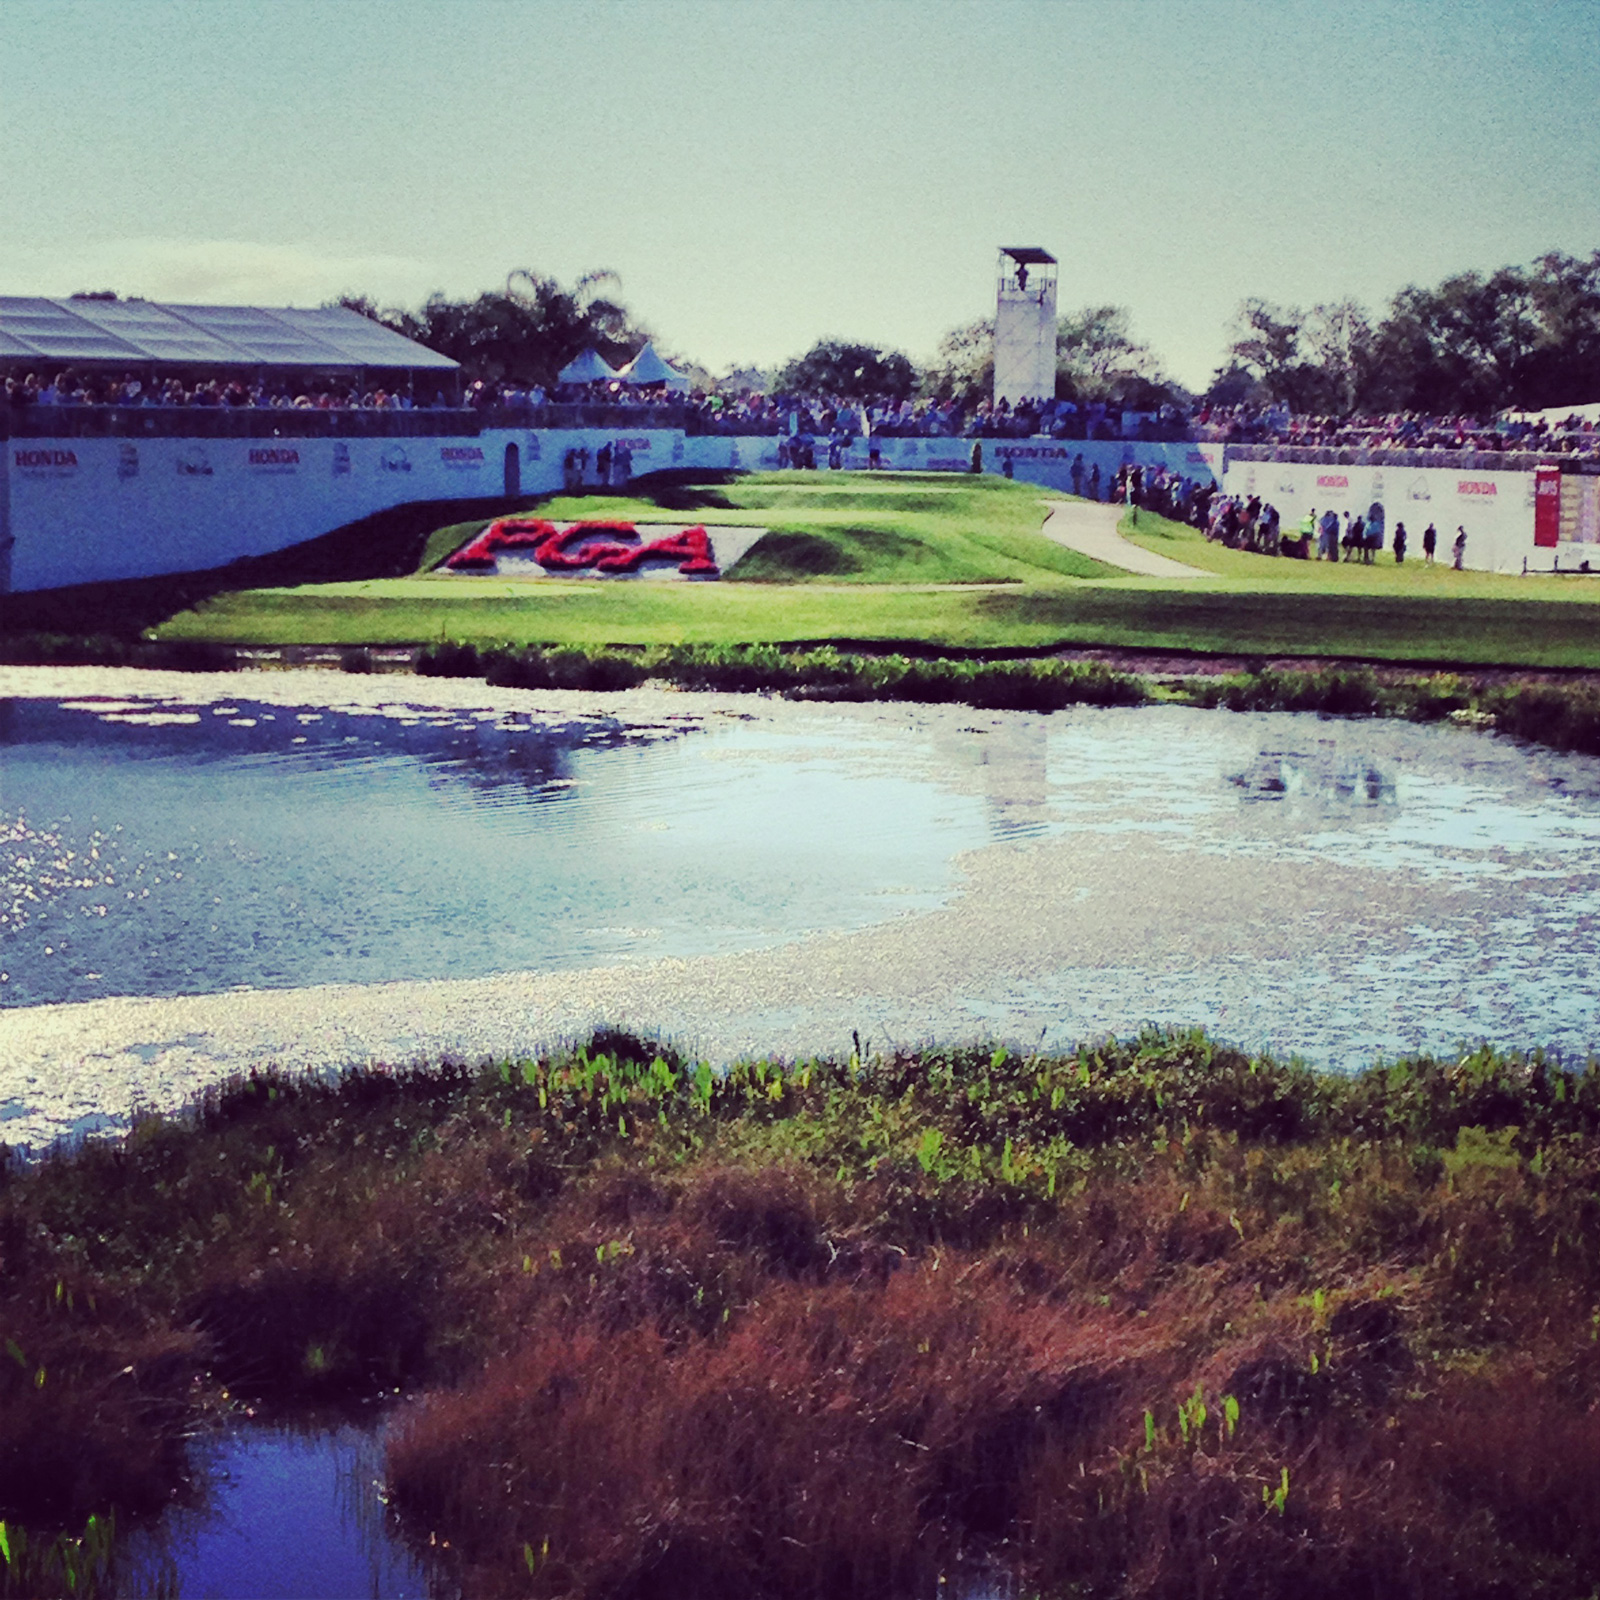 The Bear Trap at The Honda Classic has grown into one of the most popular places for spectators to watch the tournament. Located at the 16th Green, the Bear Trap also provides viewing of both the tee and green of the signature par-3 17th hole at the Jack Nicklaus-redesigned Champion Course at PGA National Resort & Spa.